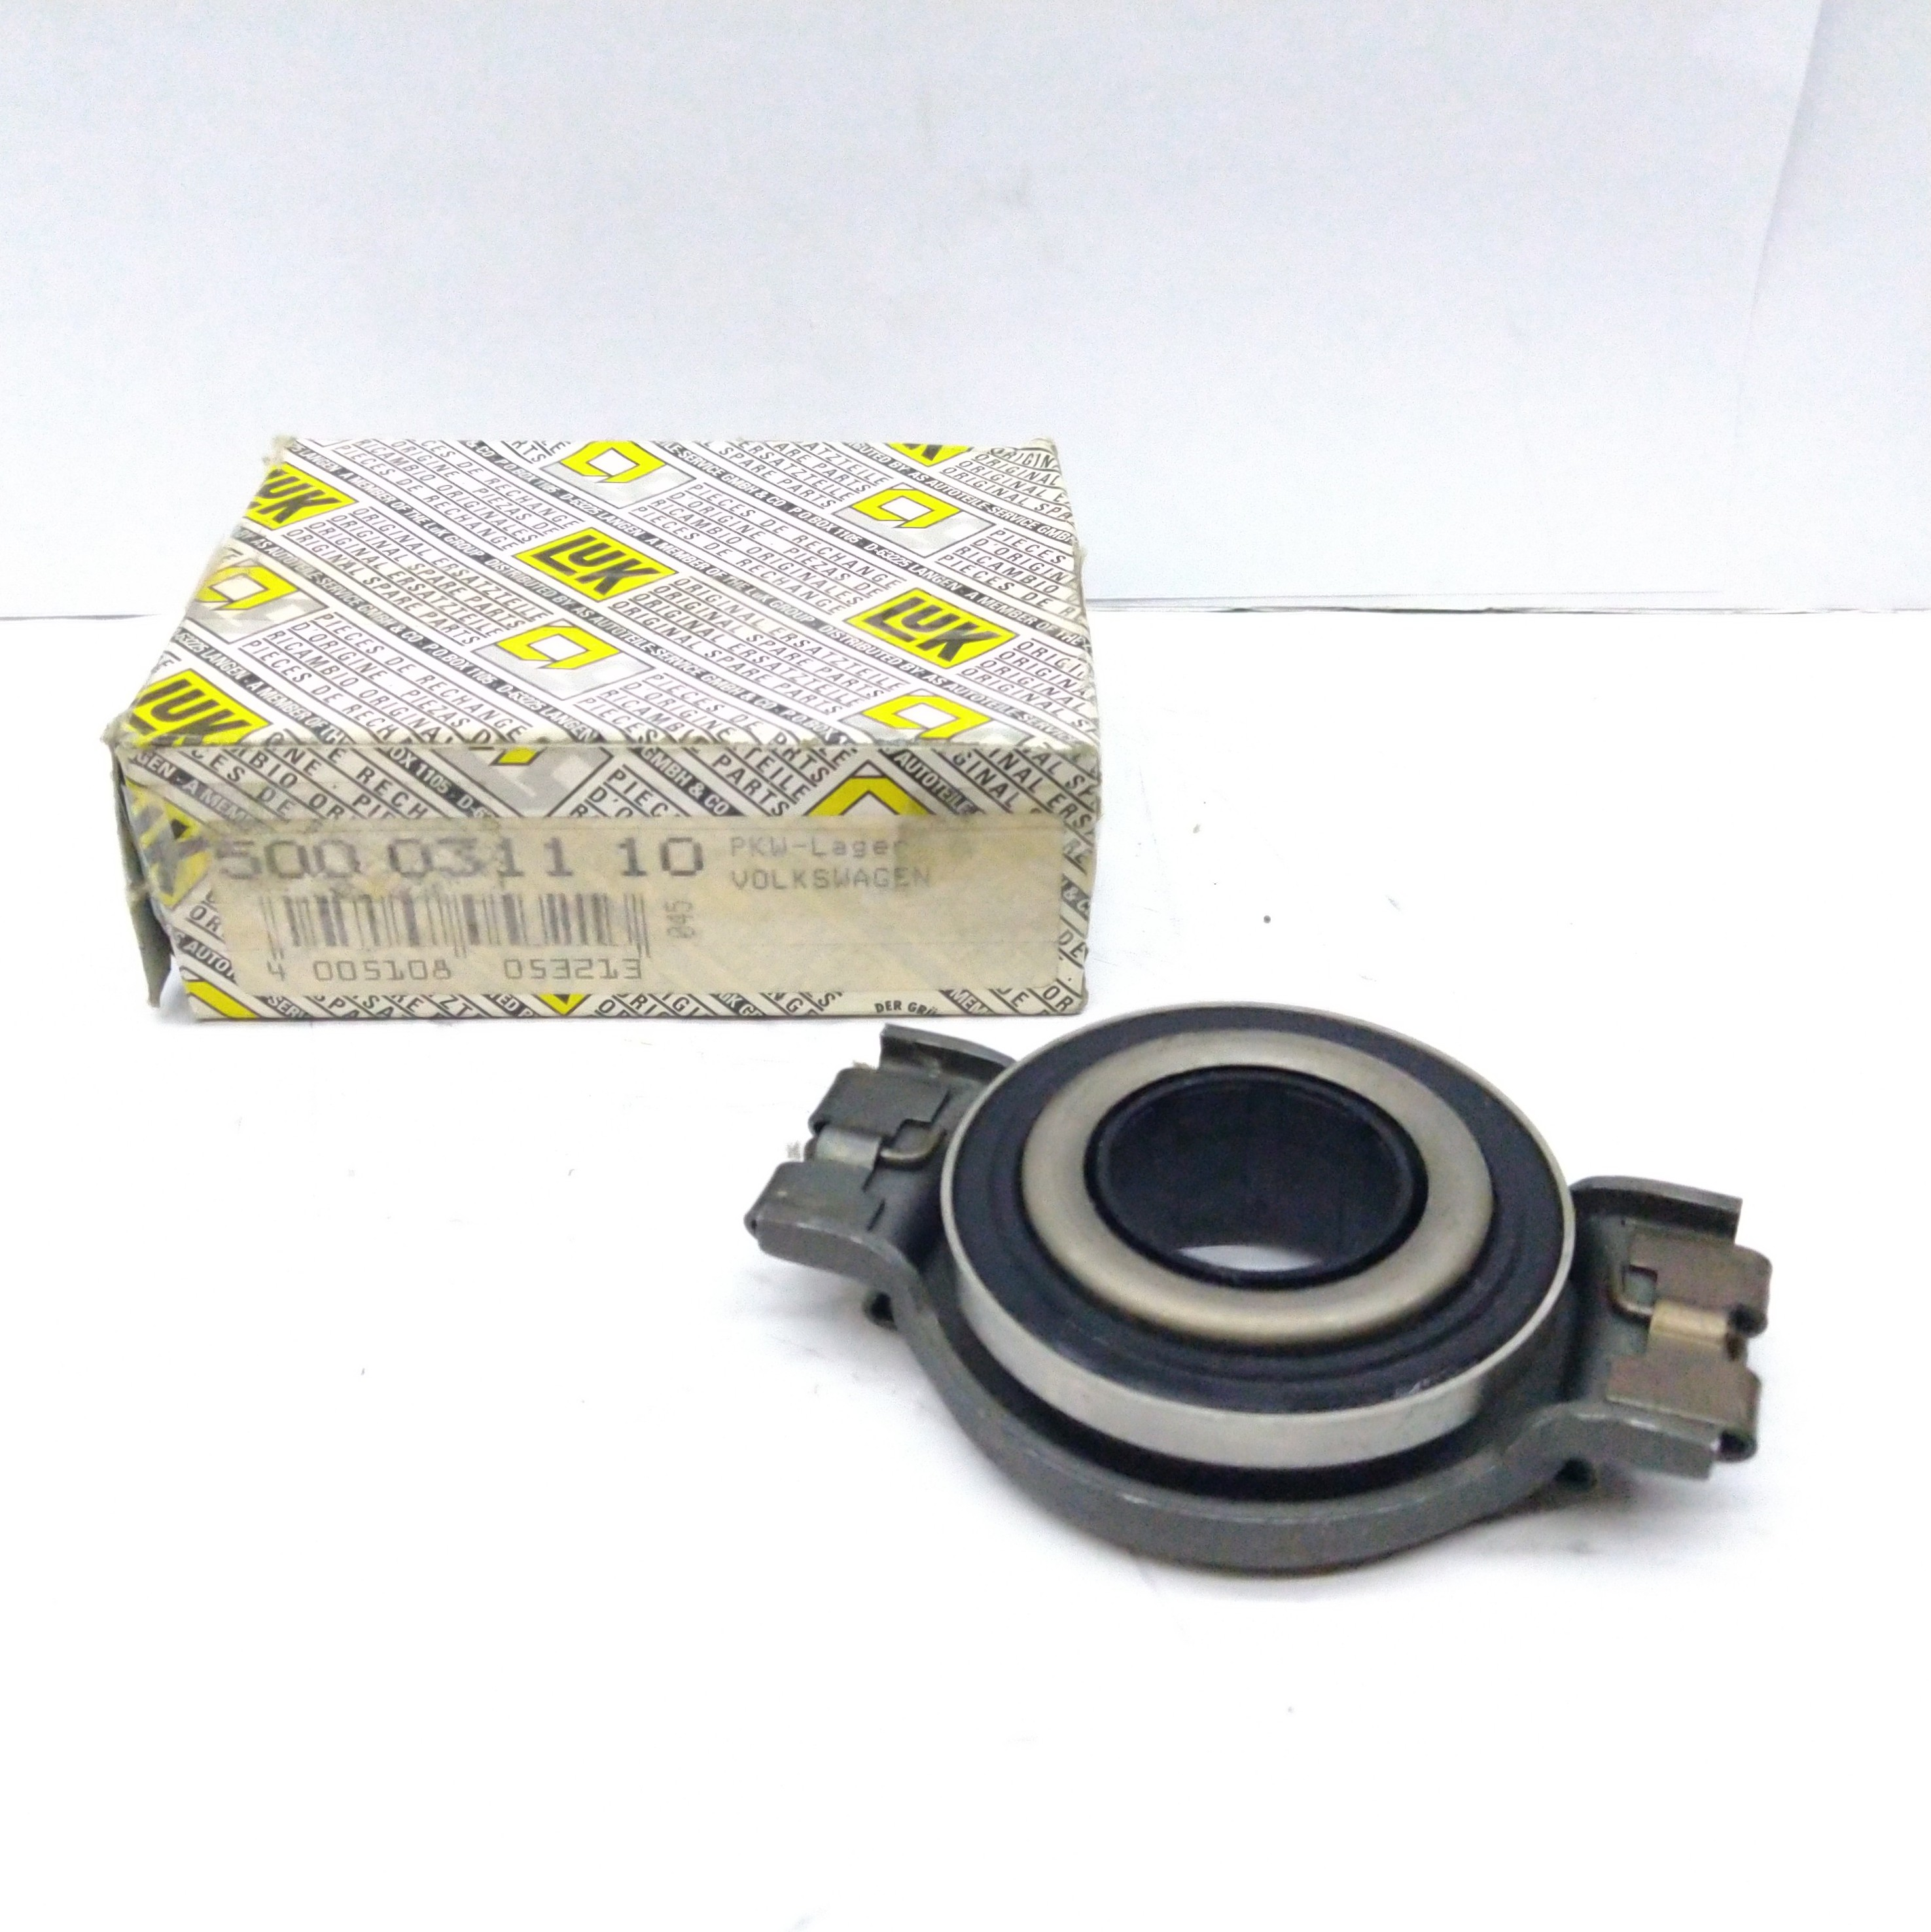 THRUST RELEASE CLUTCH AUDI A2 - VW GOLF - POLO - LUPO LUK FOR 085141165C